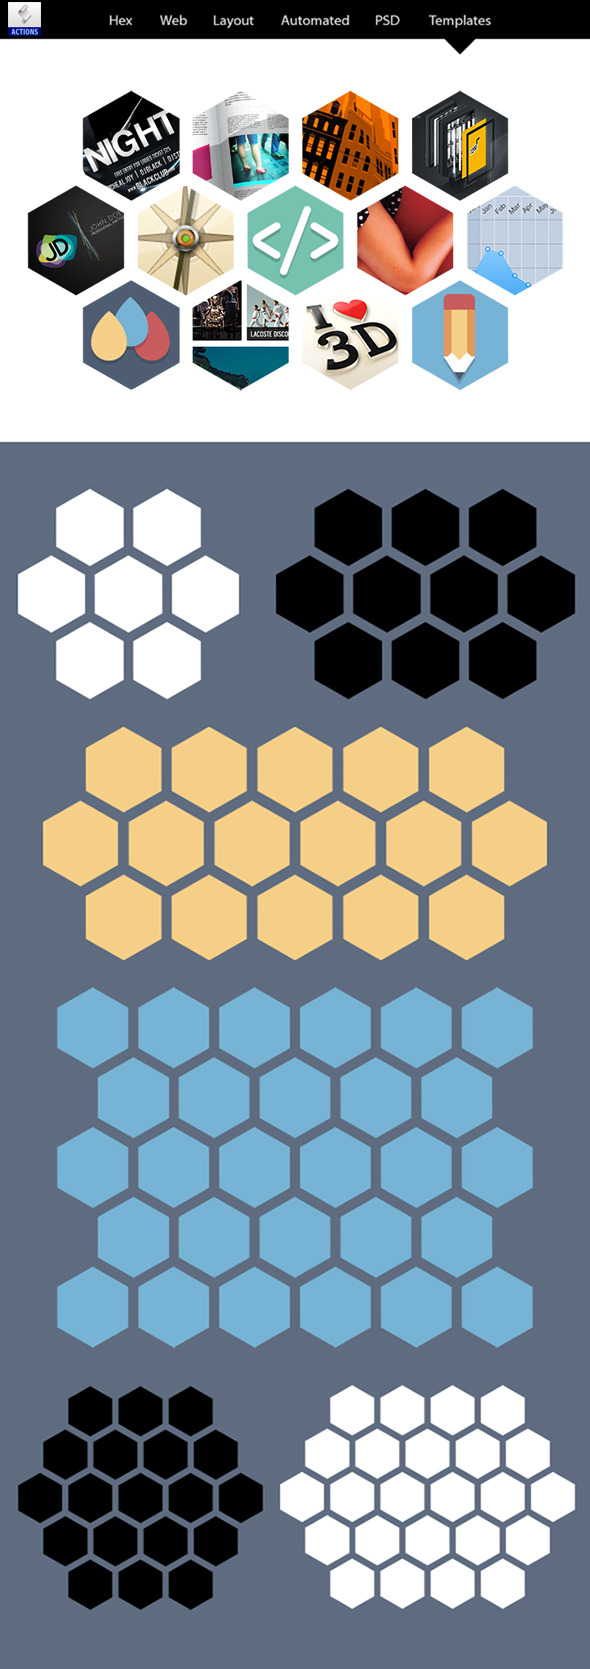 Hex Web Layouts Automated PSD Templates - Actions Photoshop